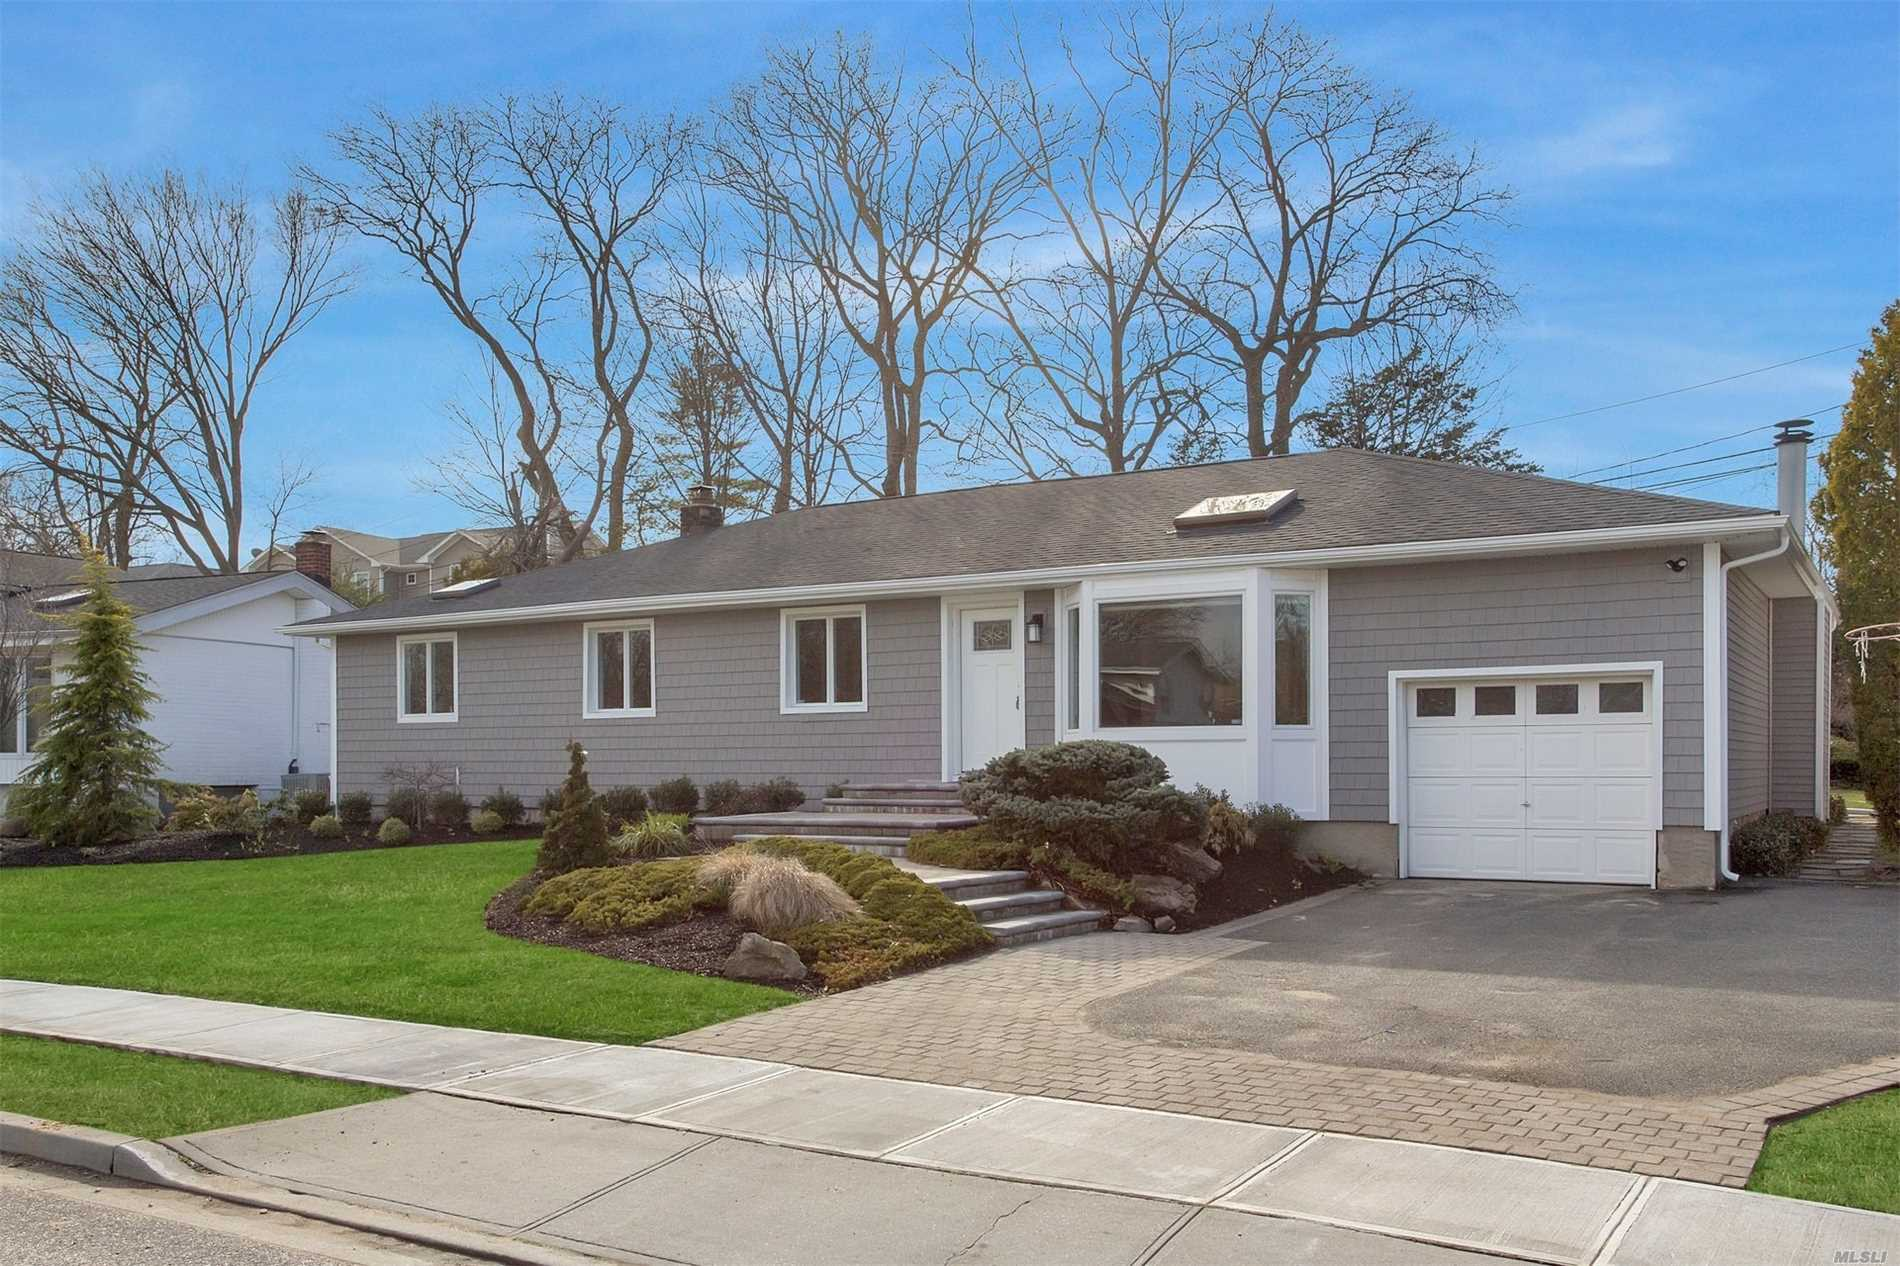 158 Forest Dr - Jericho, New York